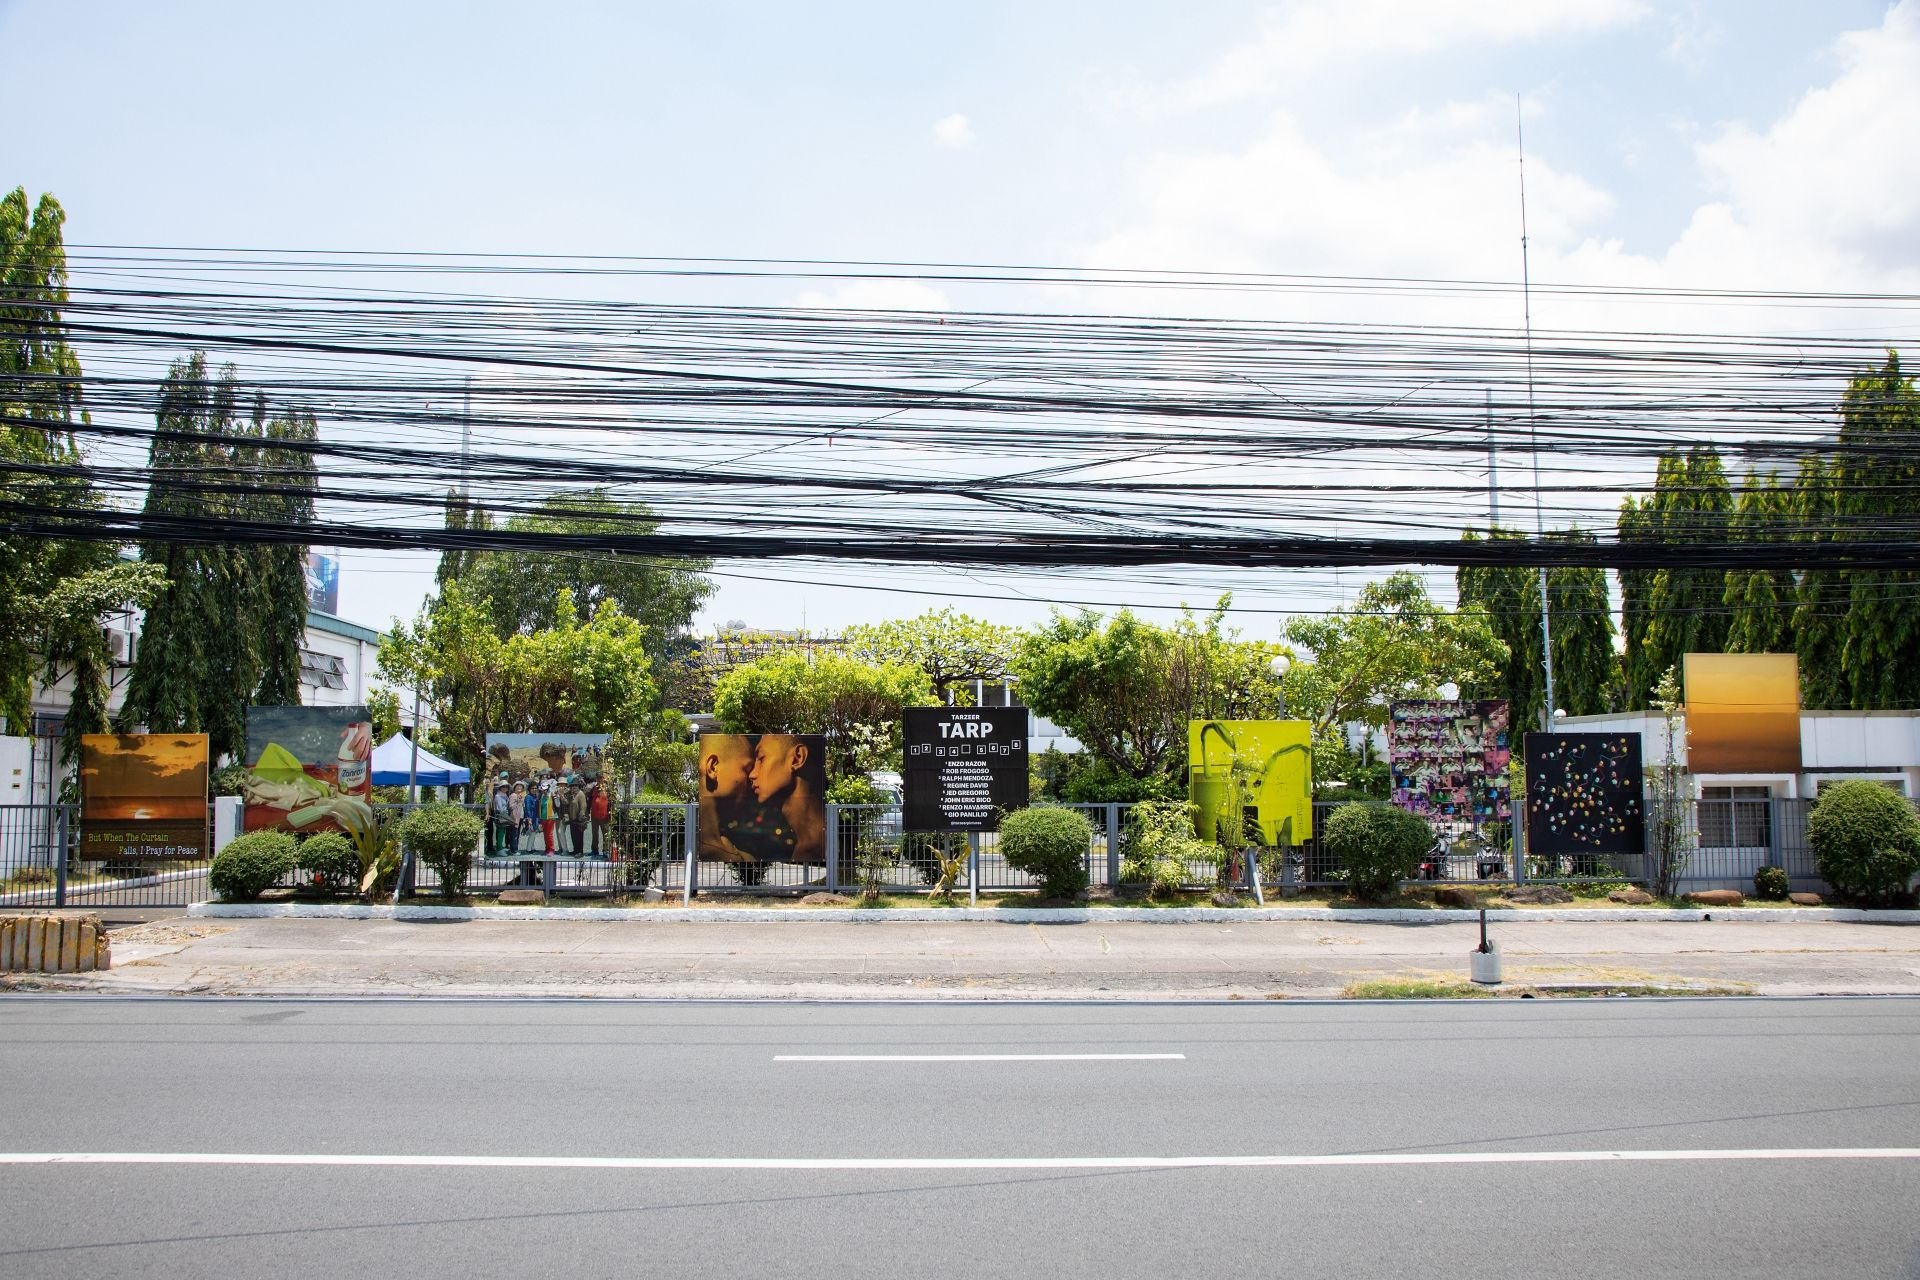 Art Fair Philippines 2021: Tarzeer Pictures Brings Art To The Public With Tarpaulins Along Pasong Tamo